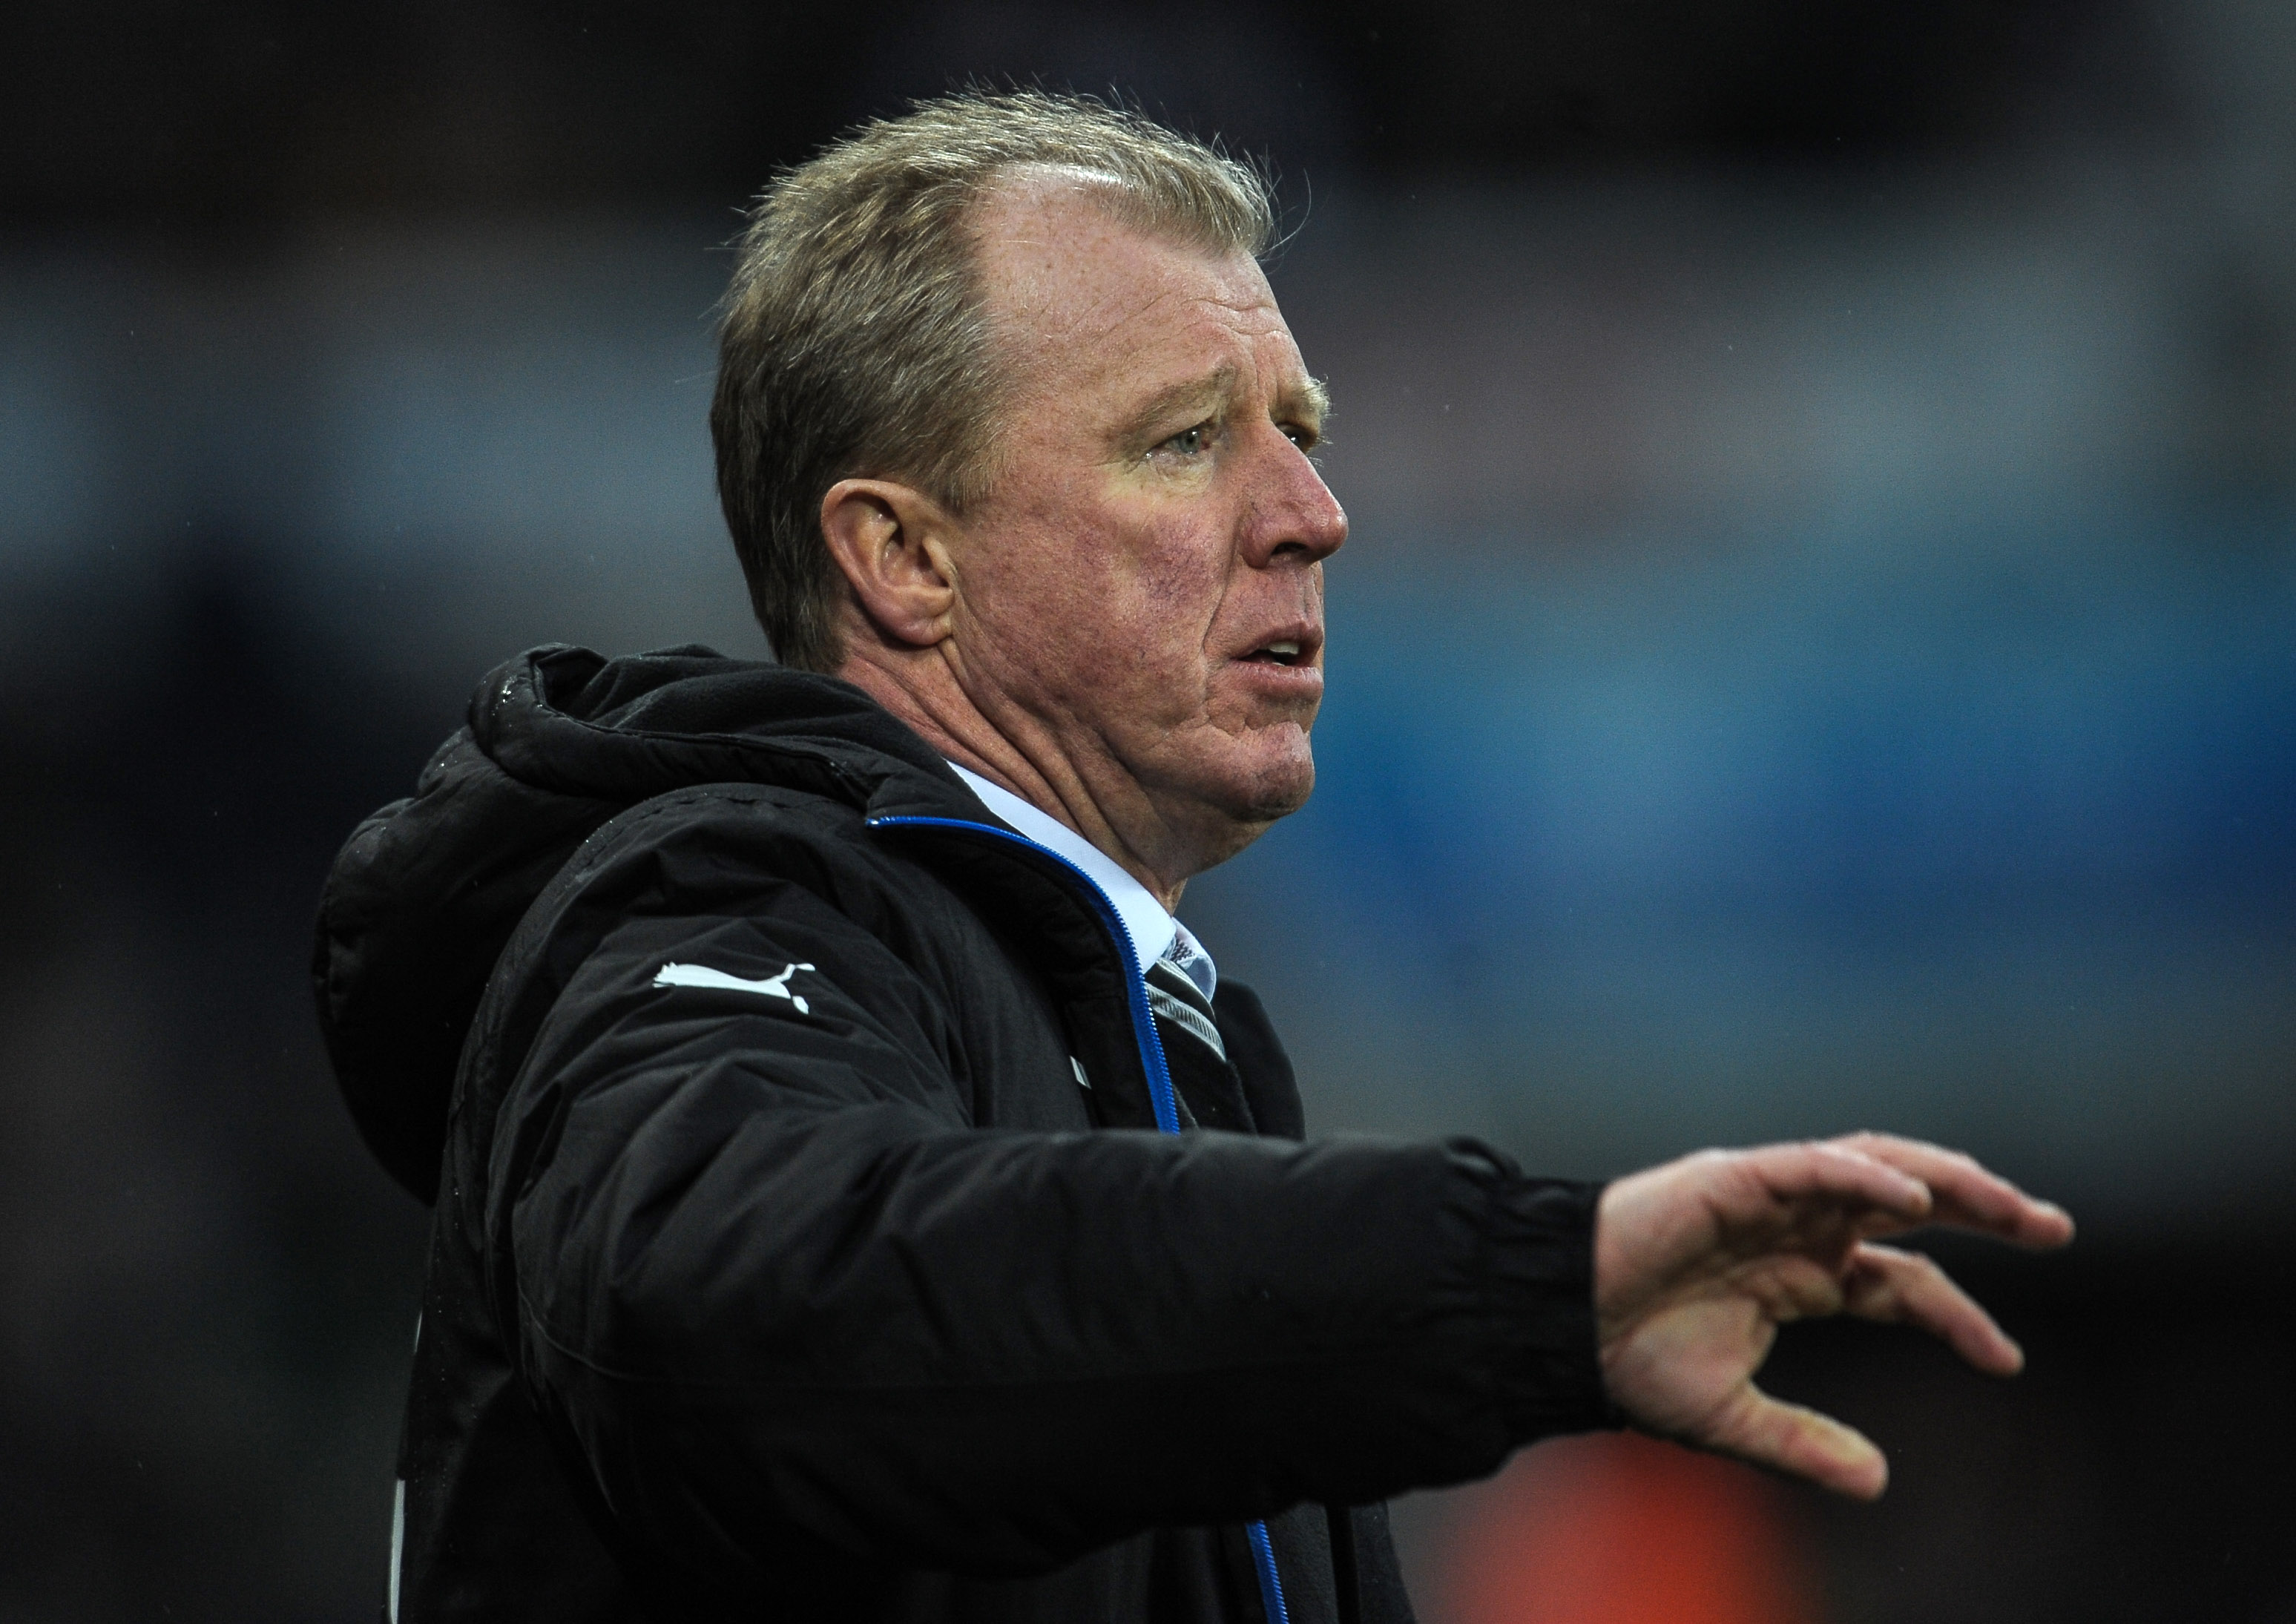 Odds slashed on Newcastle United manager Steve McClaren getting sacked